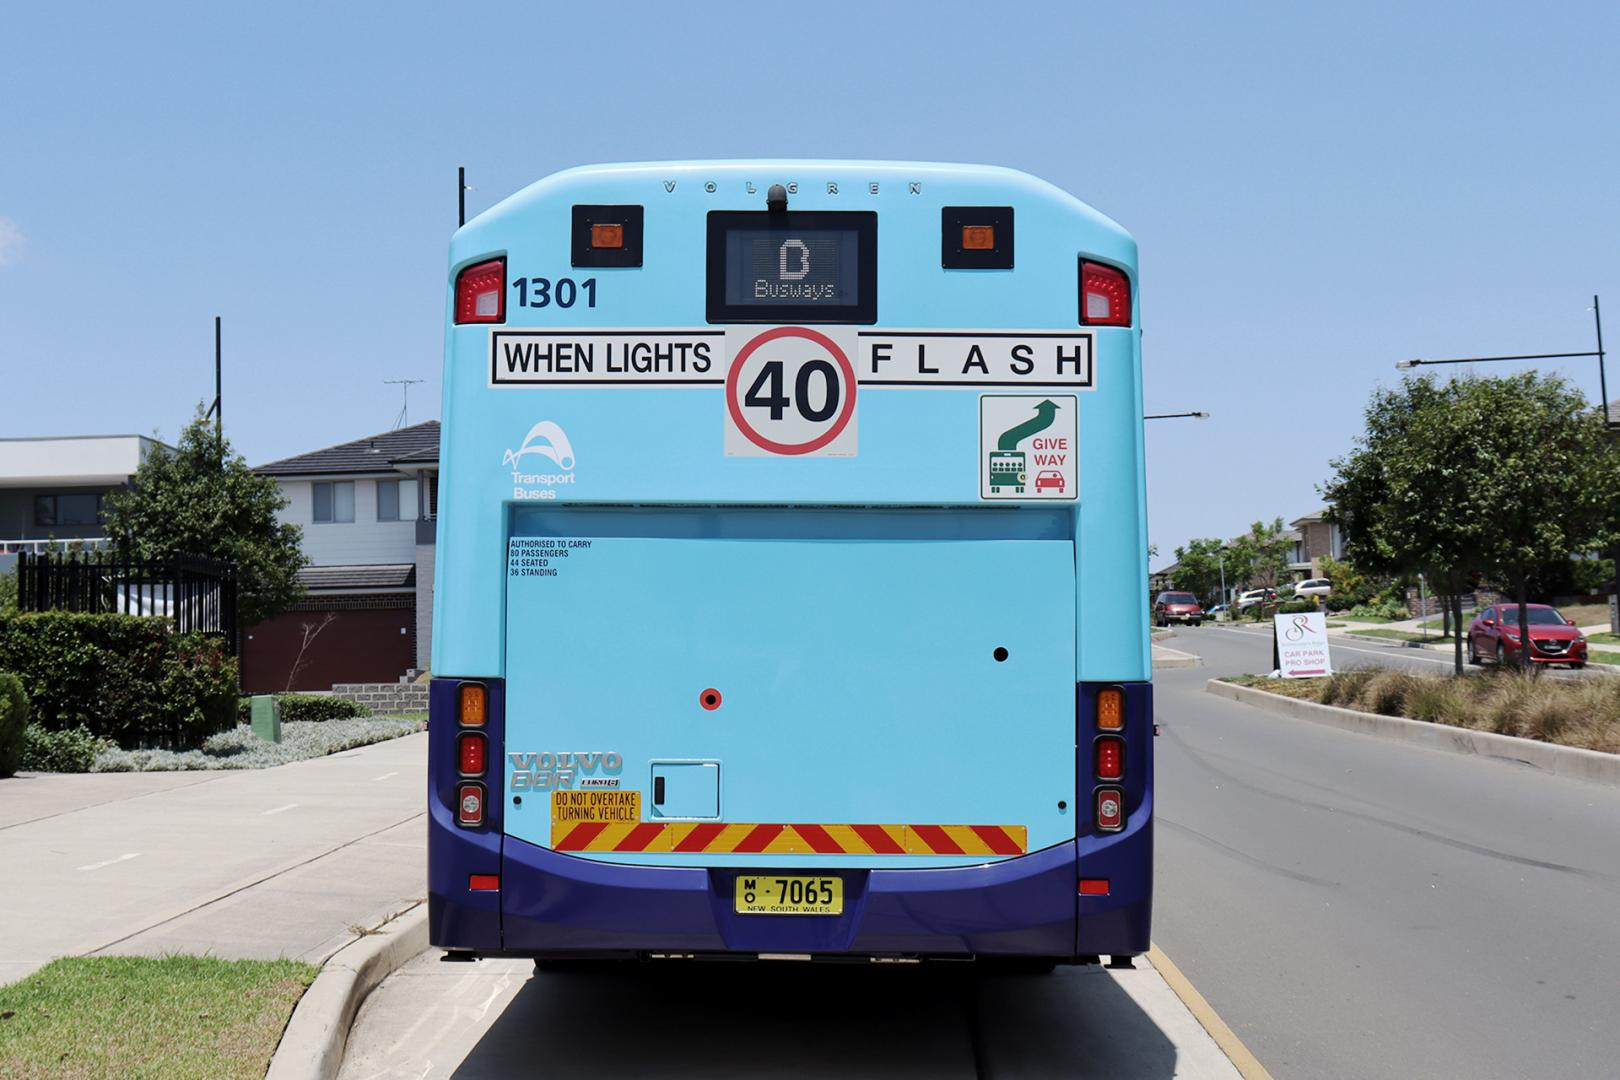 Drivers are reminded to slow down to 40km/h when bus lights flash.